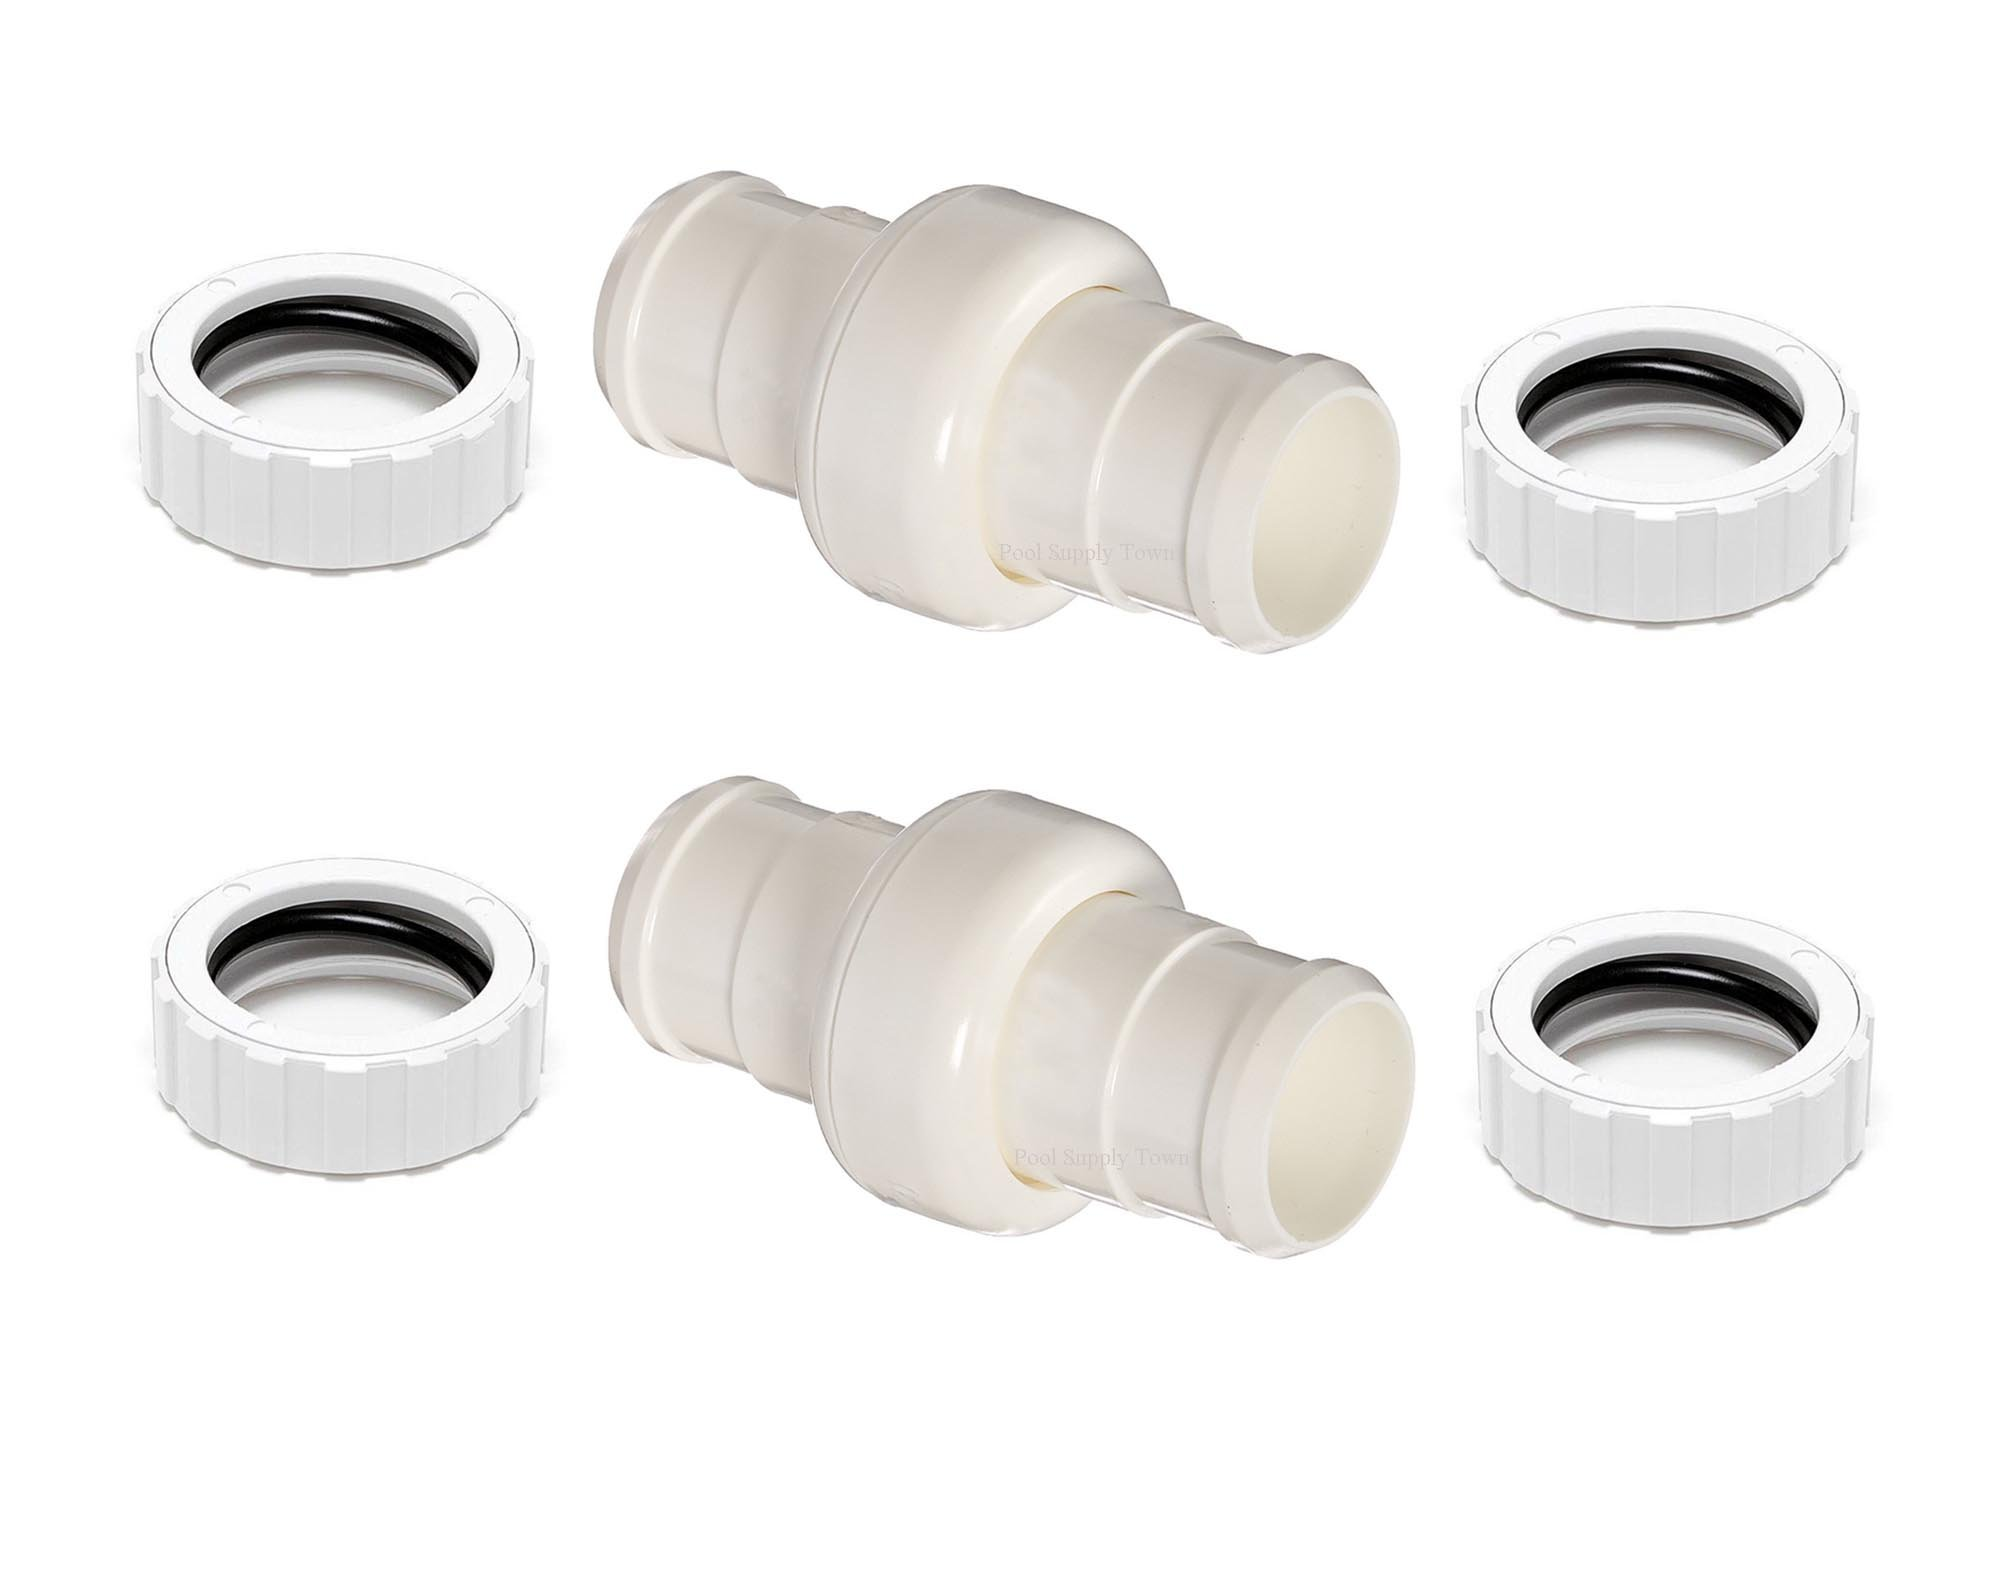 ATIE PoolSupplyTown Pool Cleaner Hose Swivel & Hose Nut Kit Replacement for Polaris 360 Pool Cleaner Hose Swivel 9-100-3002 and Hose Nut 9-100-3109 (2 Pack) by ATIE